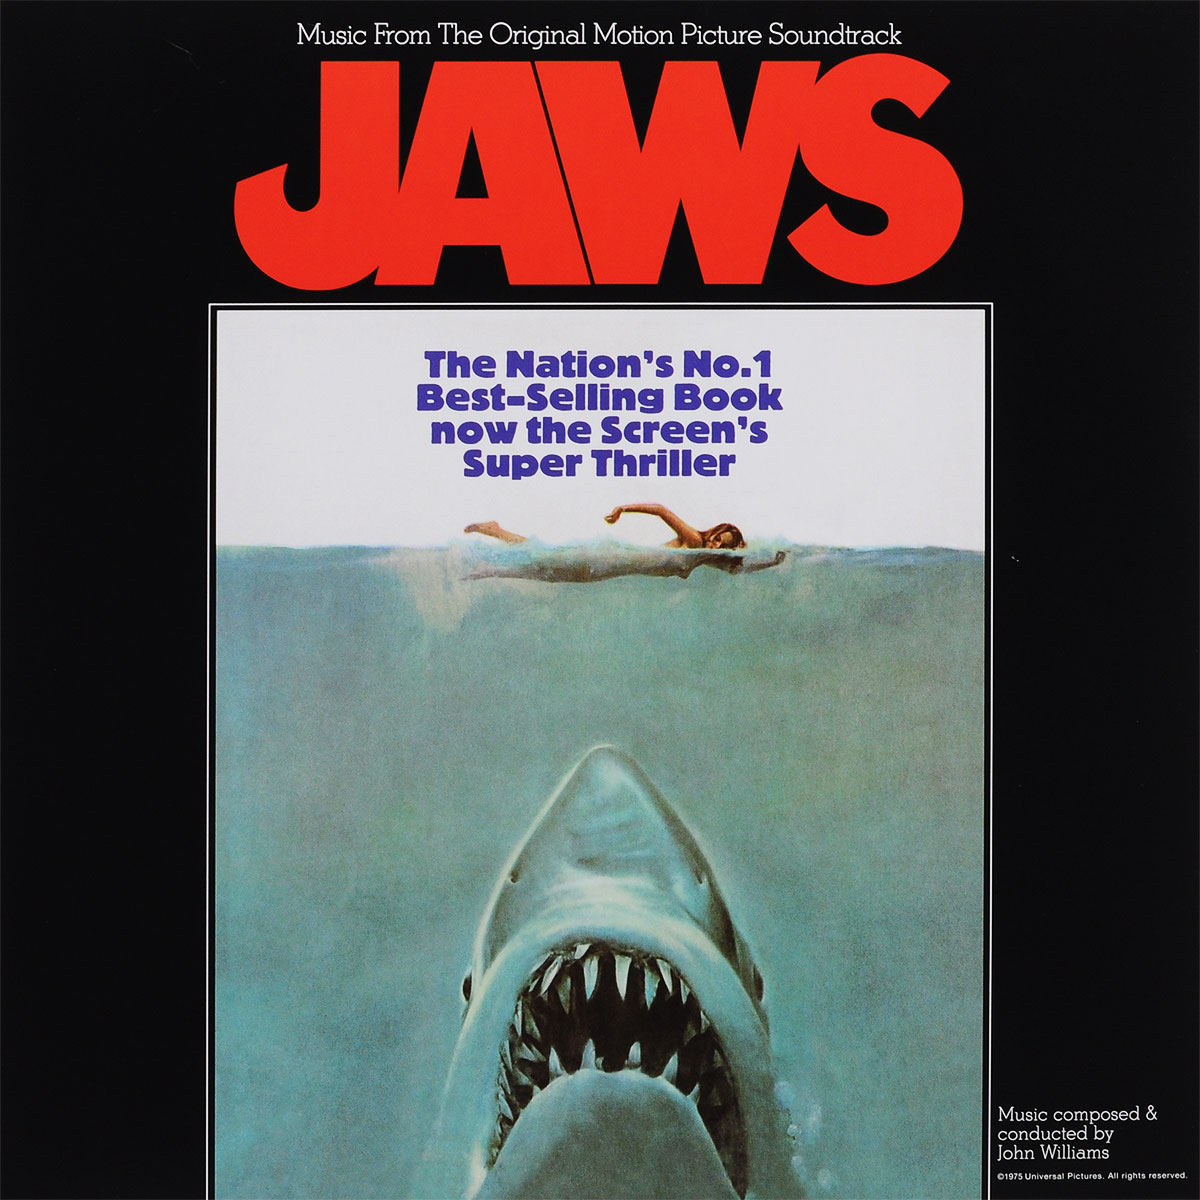 Jaws. Original Motion Picture Soundtrack (LP) butch tavares adi armour the o jays brawl in cell block 99 original motion picture soundtrack lp